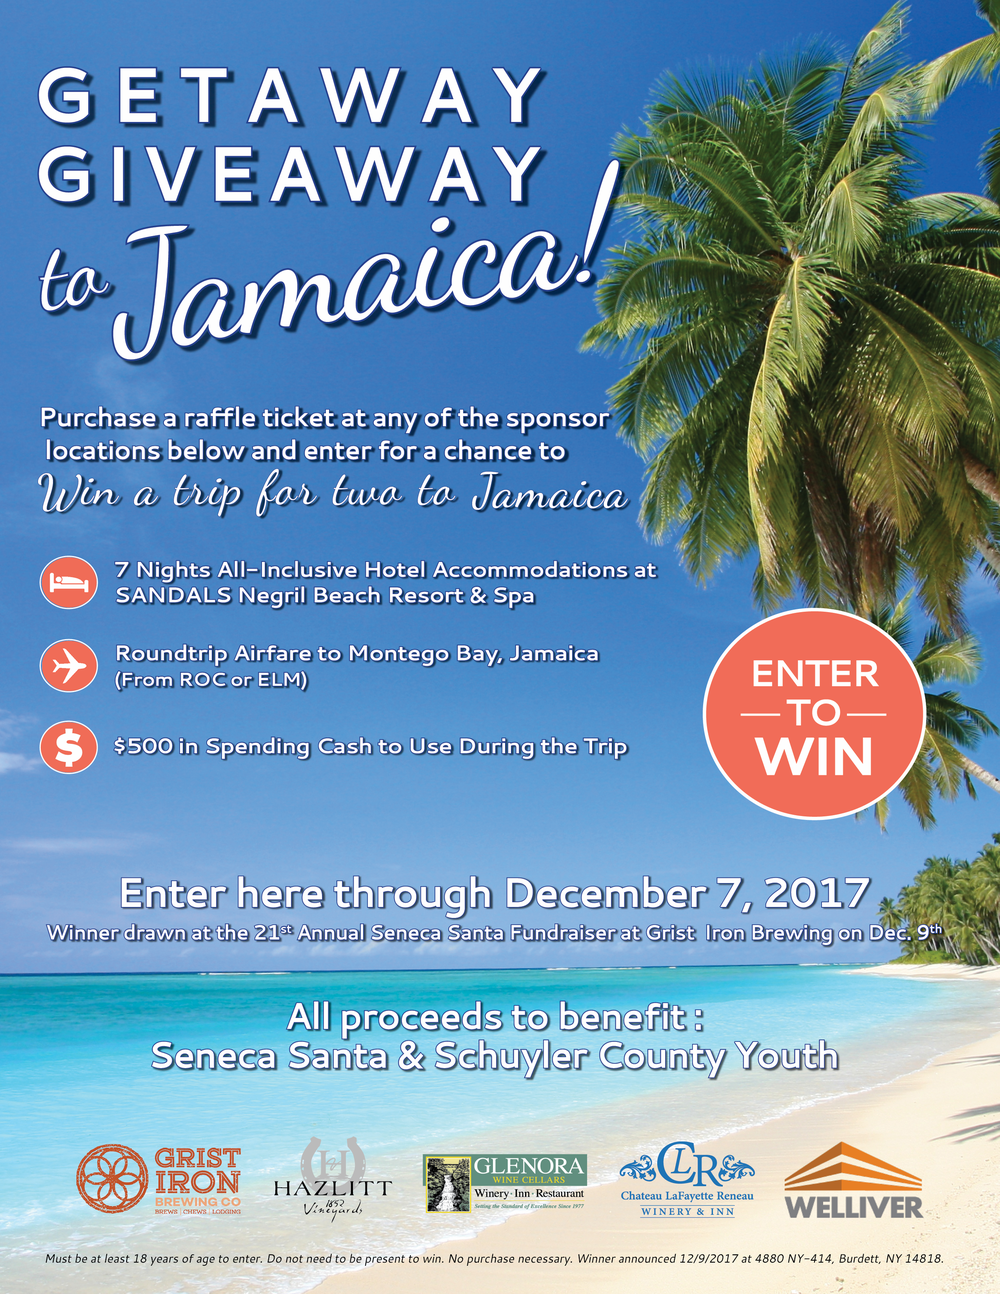 Getaway Giveaway Flyer_Sandals Jamaica_8.5x11.png